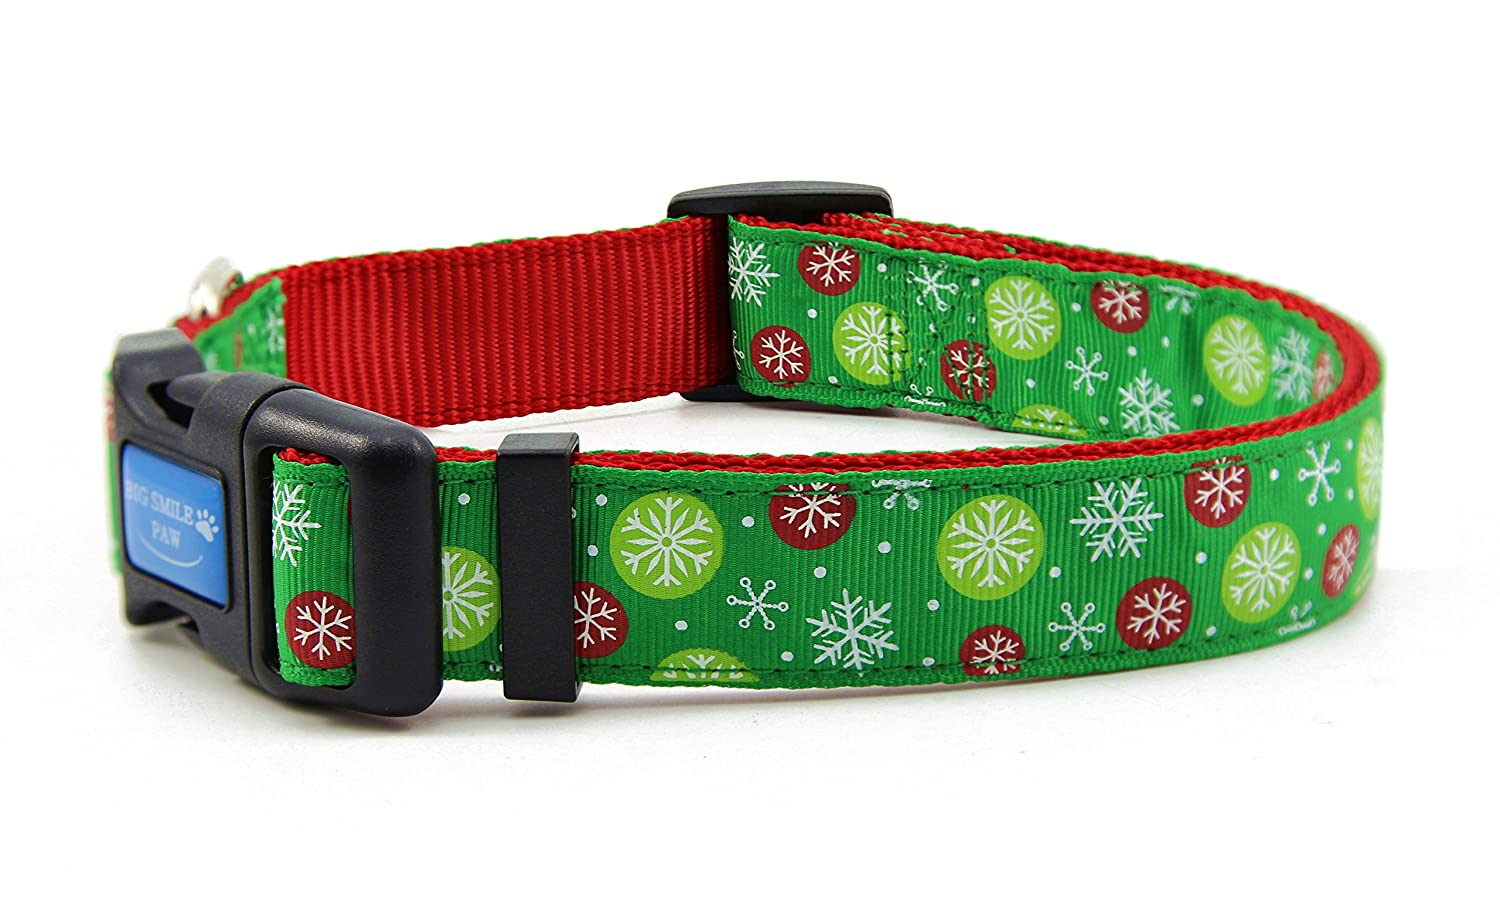 M BIG SMILE PAW Nylon Dog Collar Adjustable,Winter Snow Theme (M)